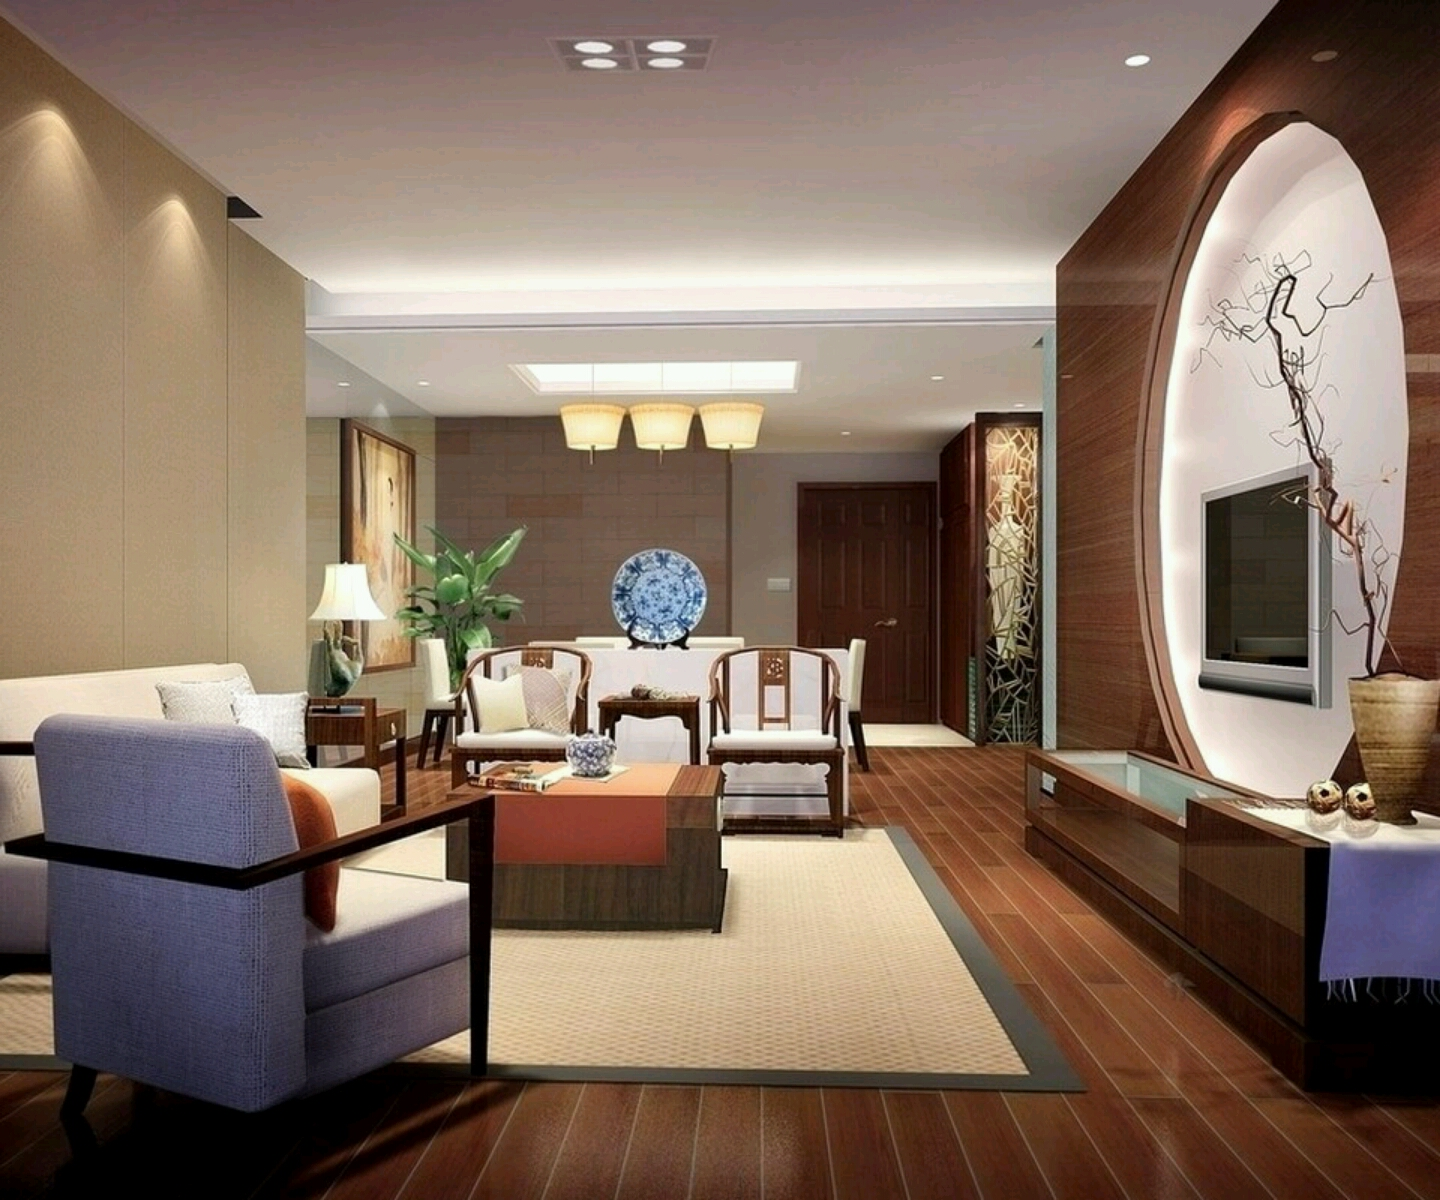 Luxury homes interior decoration living room designs ideas for Living room interior design photo gallery